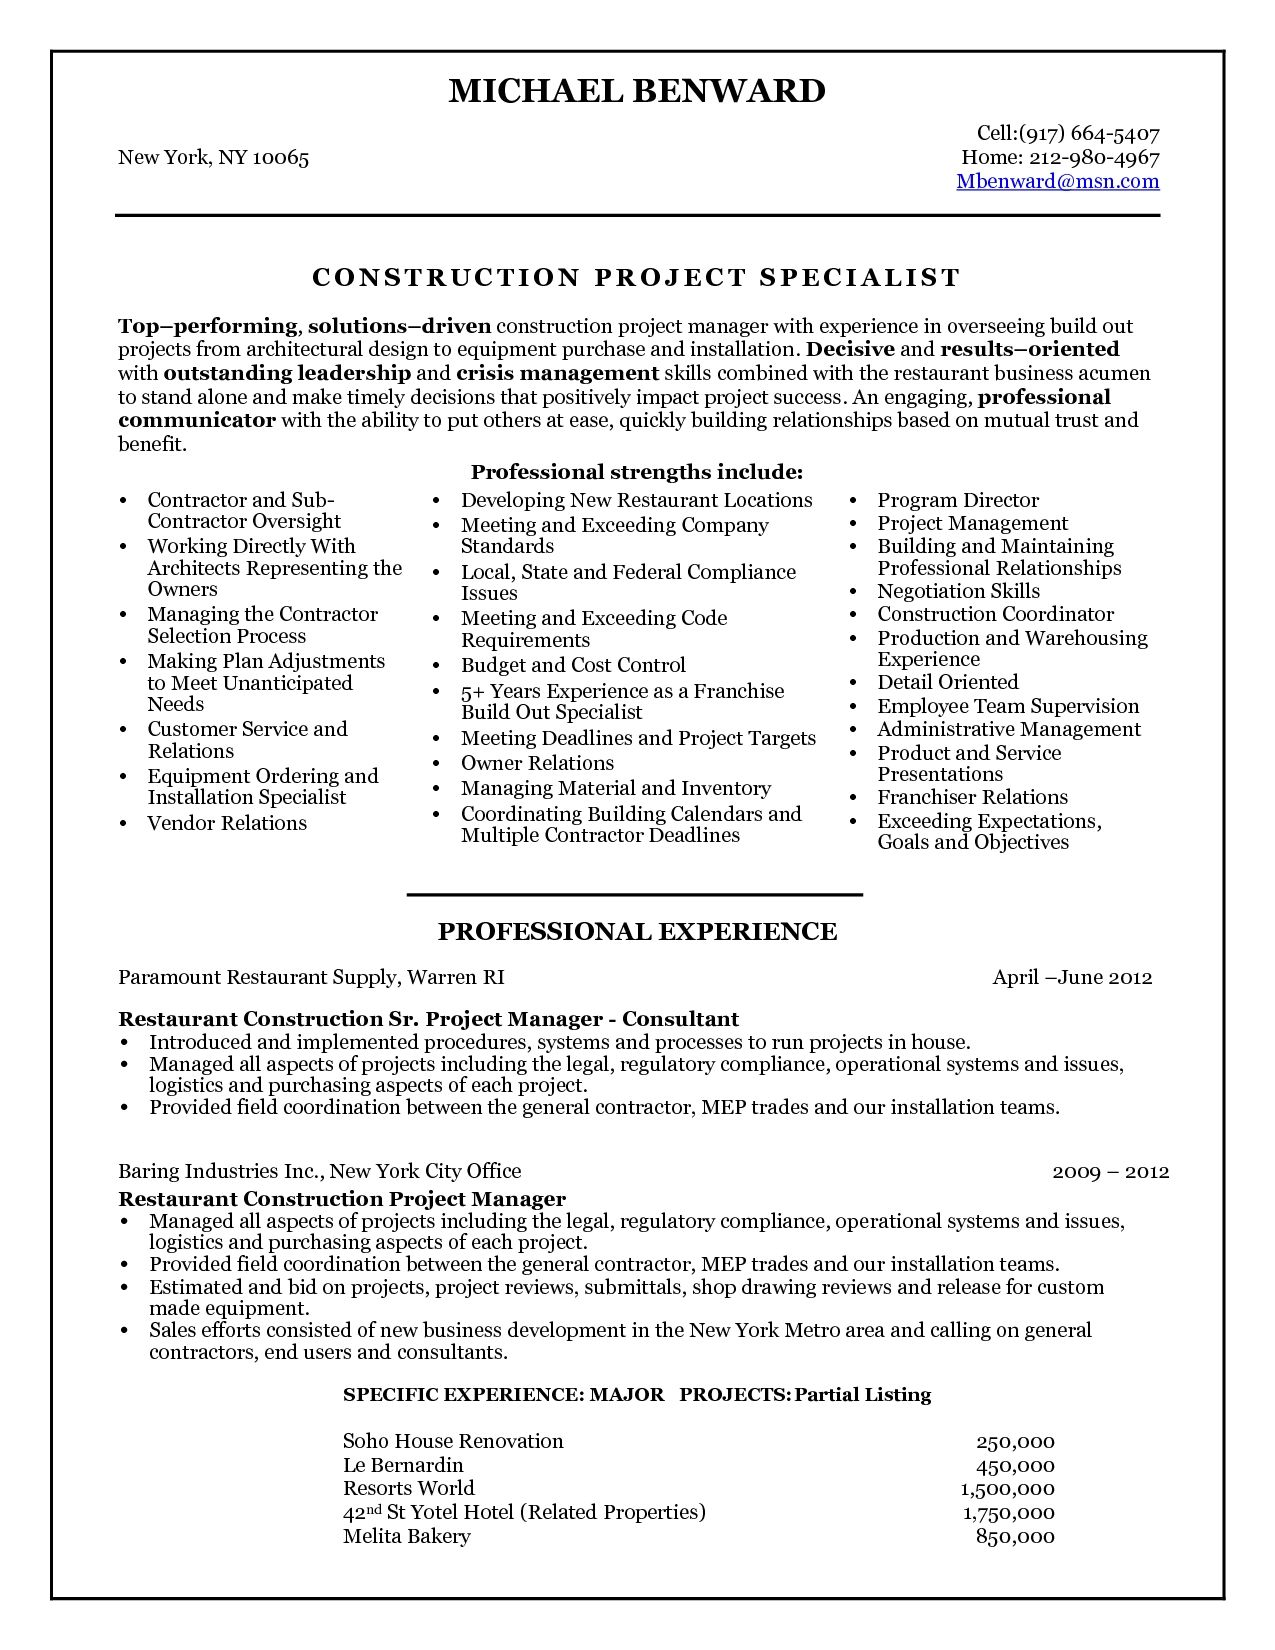 It Consultant Resume Examples Awesome Image Result For Consultant Resume Samples  Randomness  Pinterest